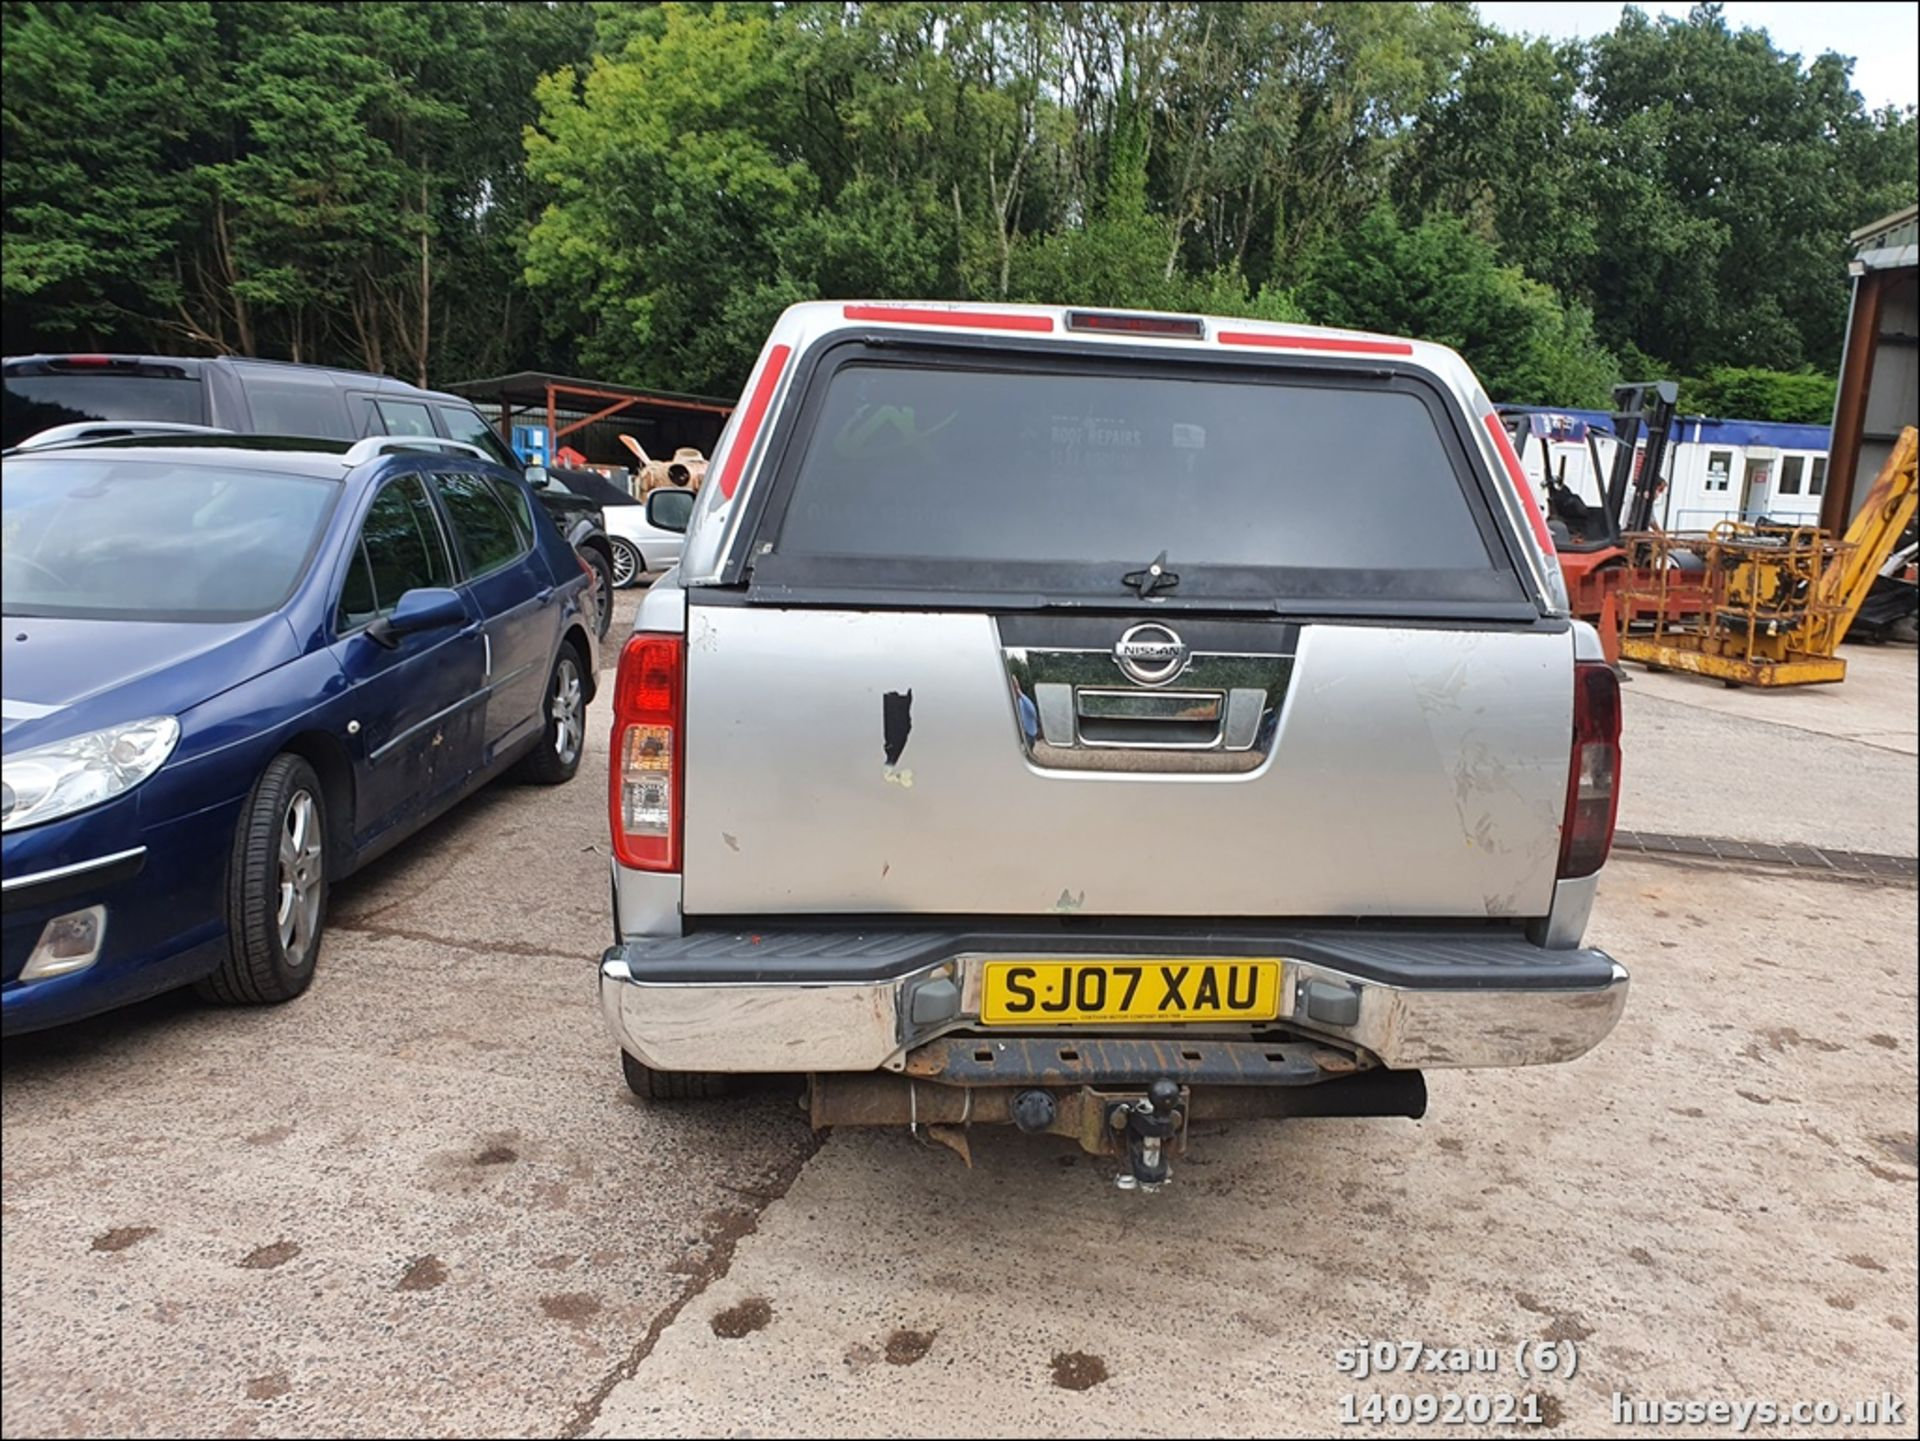 07/07 NISSAN NAVARA D/C OUTLAW DCI - 2488cc 4dr 4x4 (Silver, 166k) - Image 6 of 15